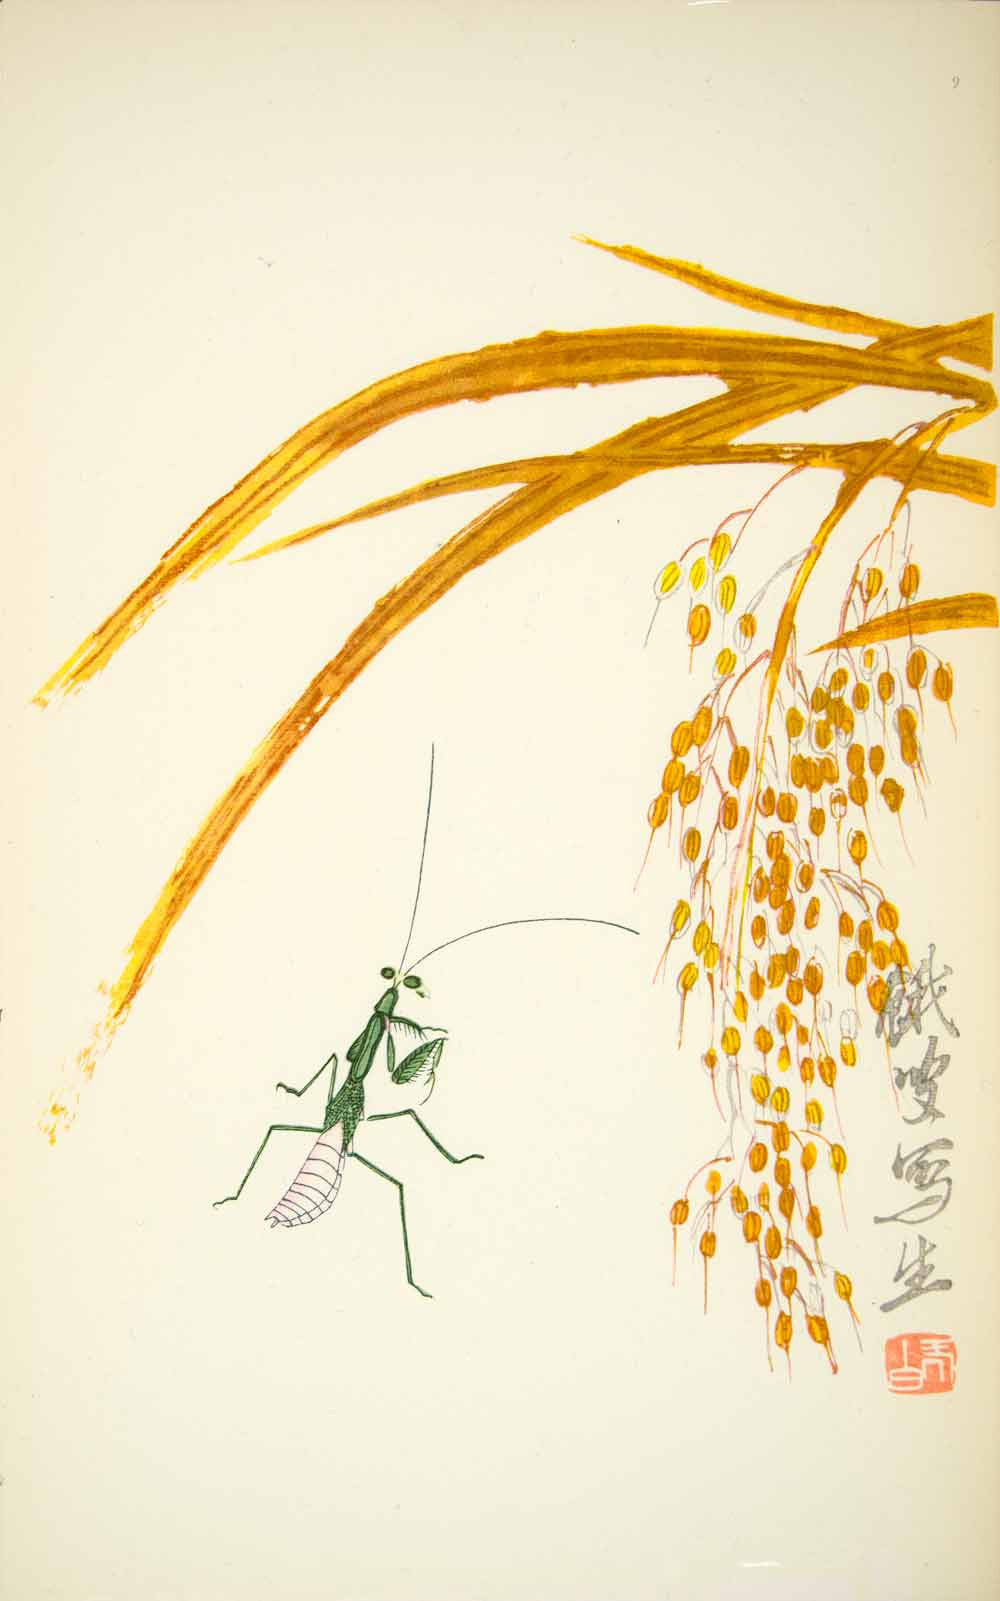 1953 Lithograph Chinese Praying Mantis Millet Grain Nature Grass Golden Cricket - Period Paper